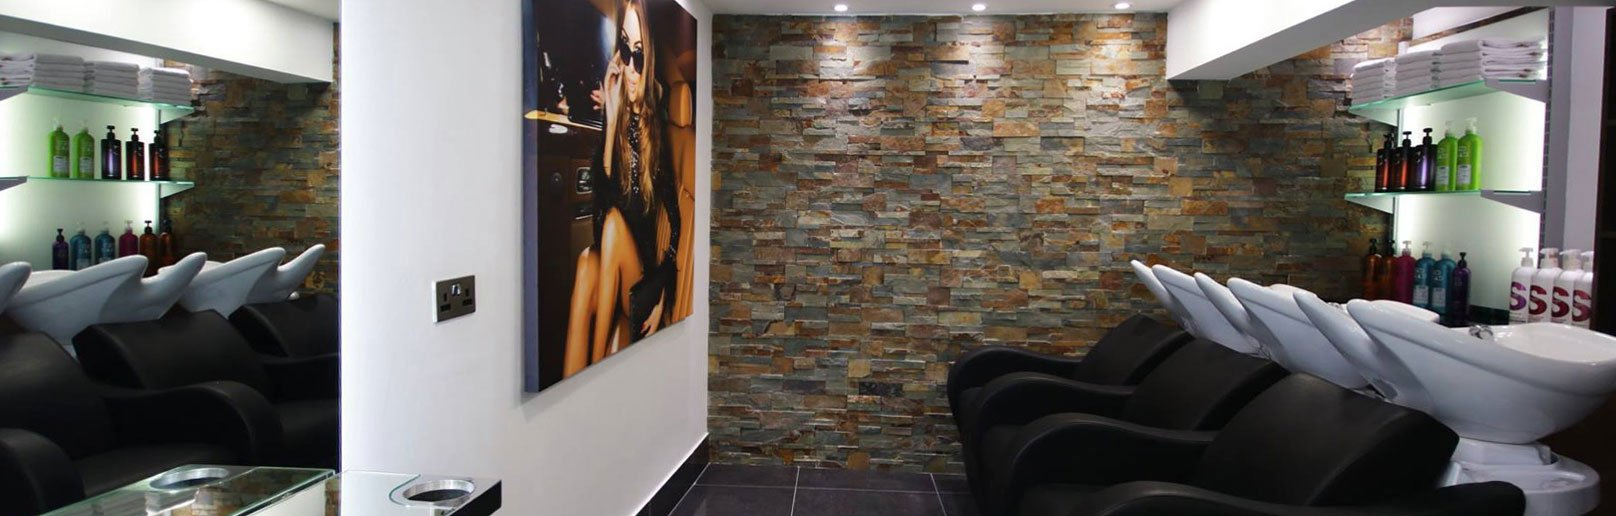 Forresters Wallingford hair salon interior view 4